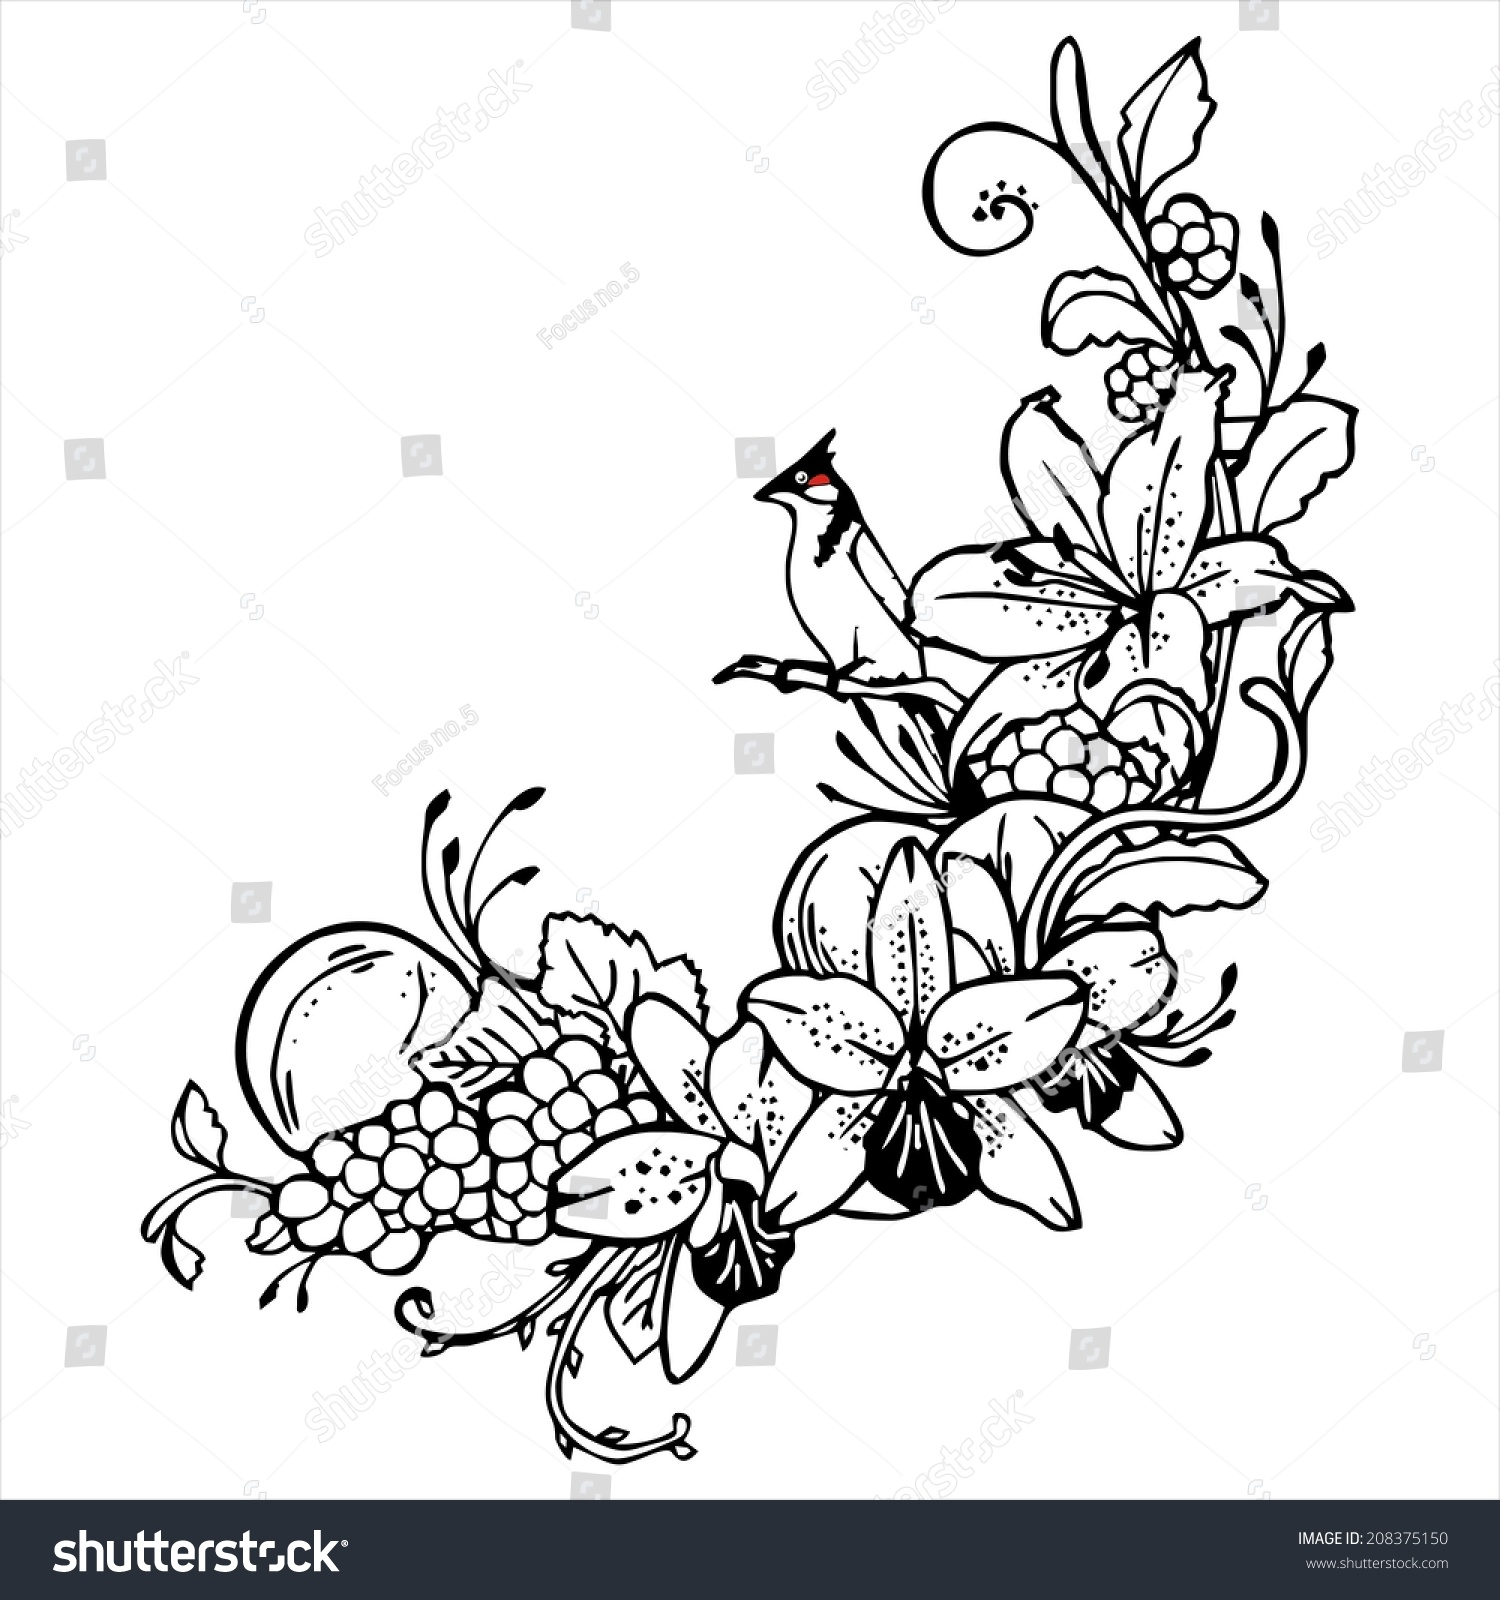 Line Drawing Flower Vector : Bird orange flower line drawing vintage stock vector